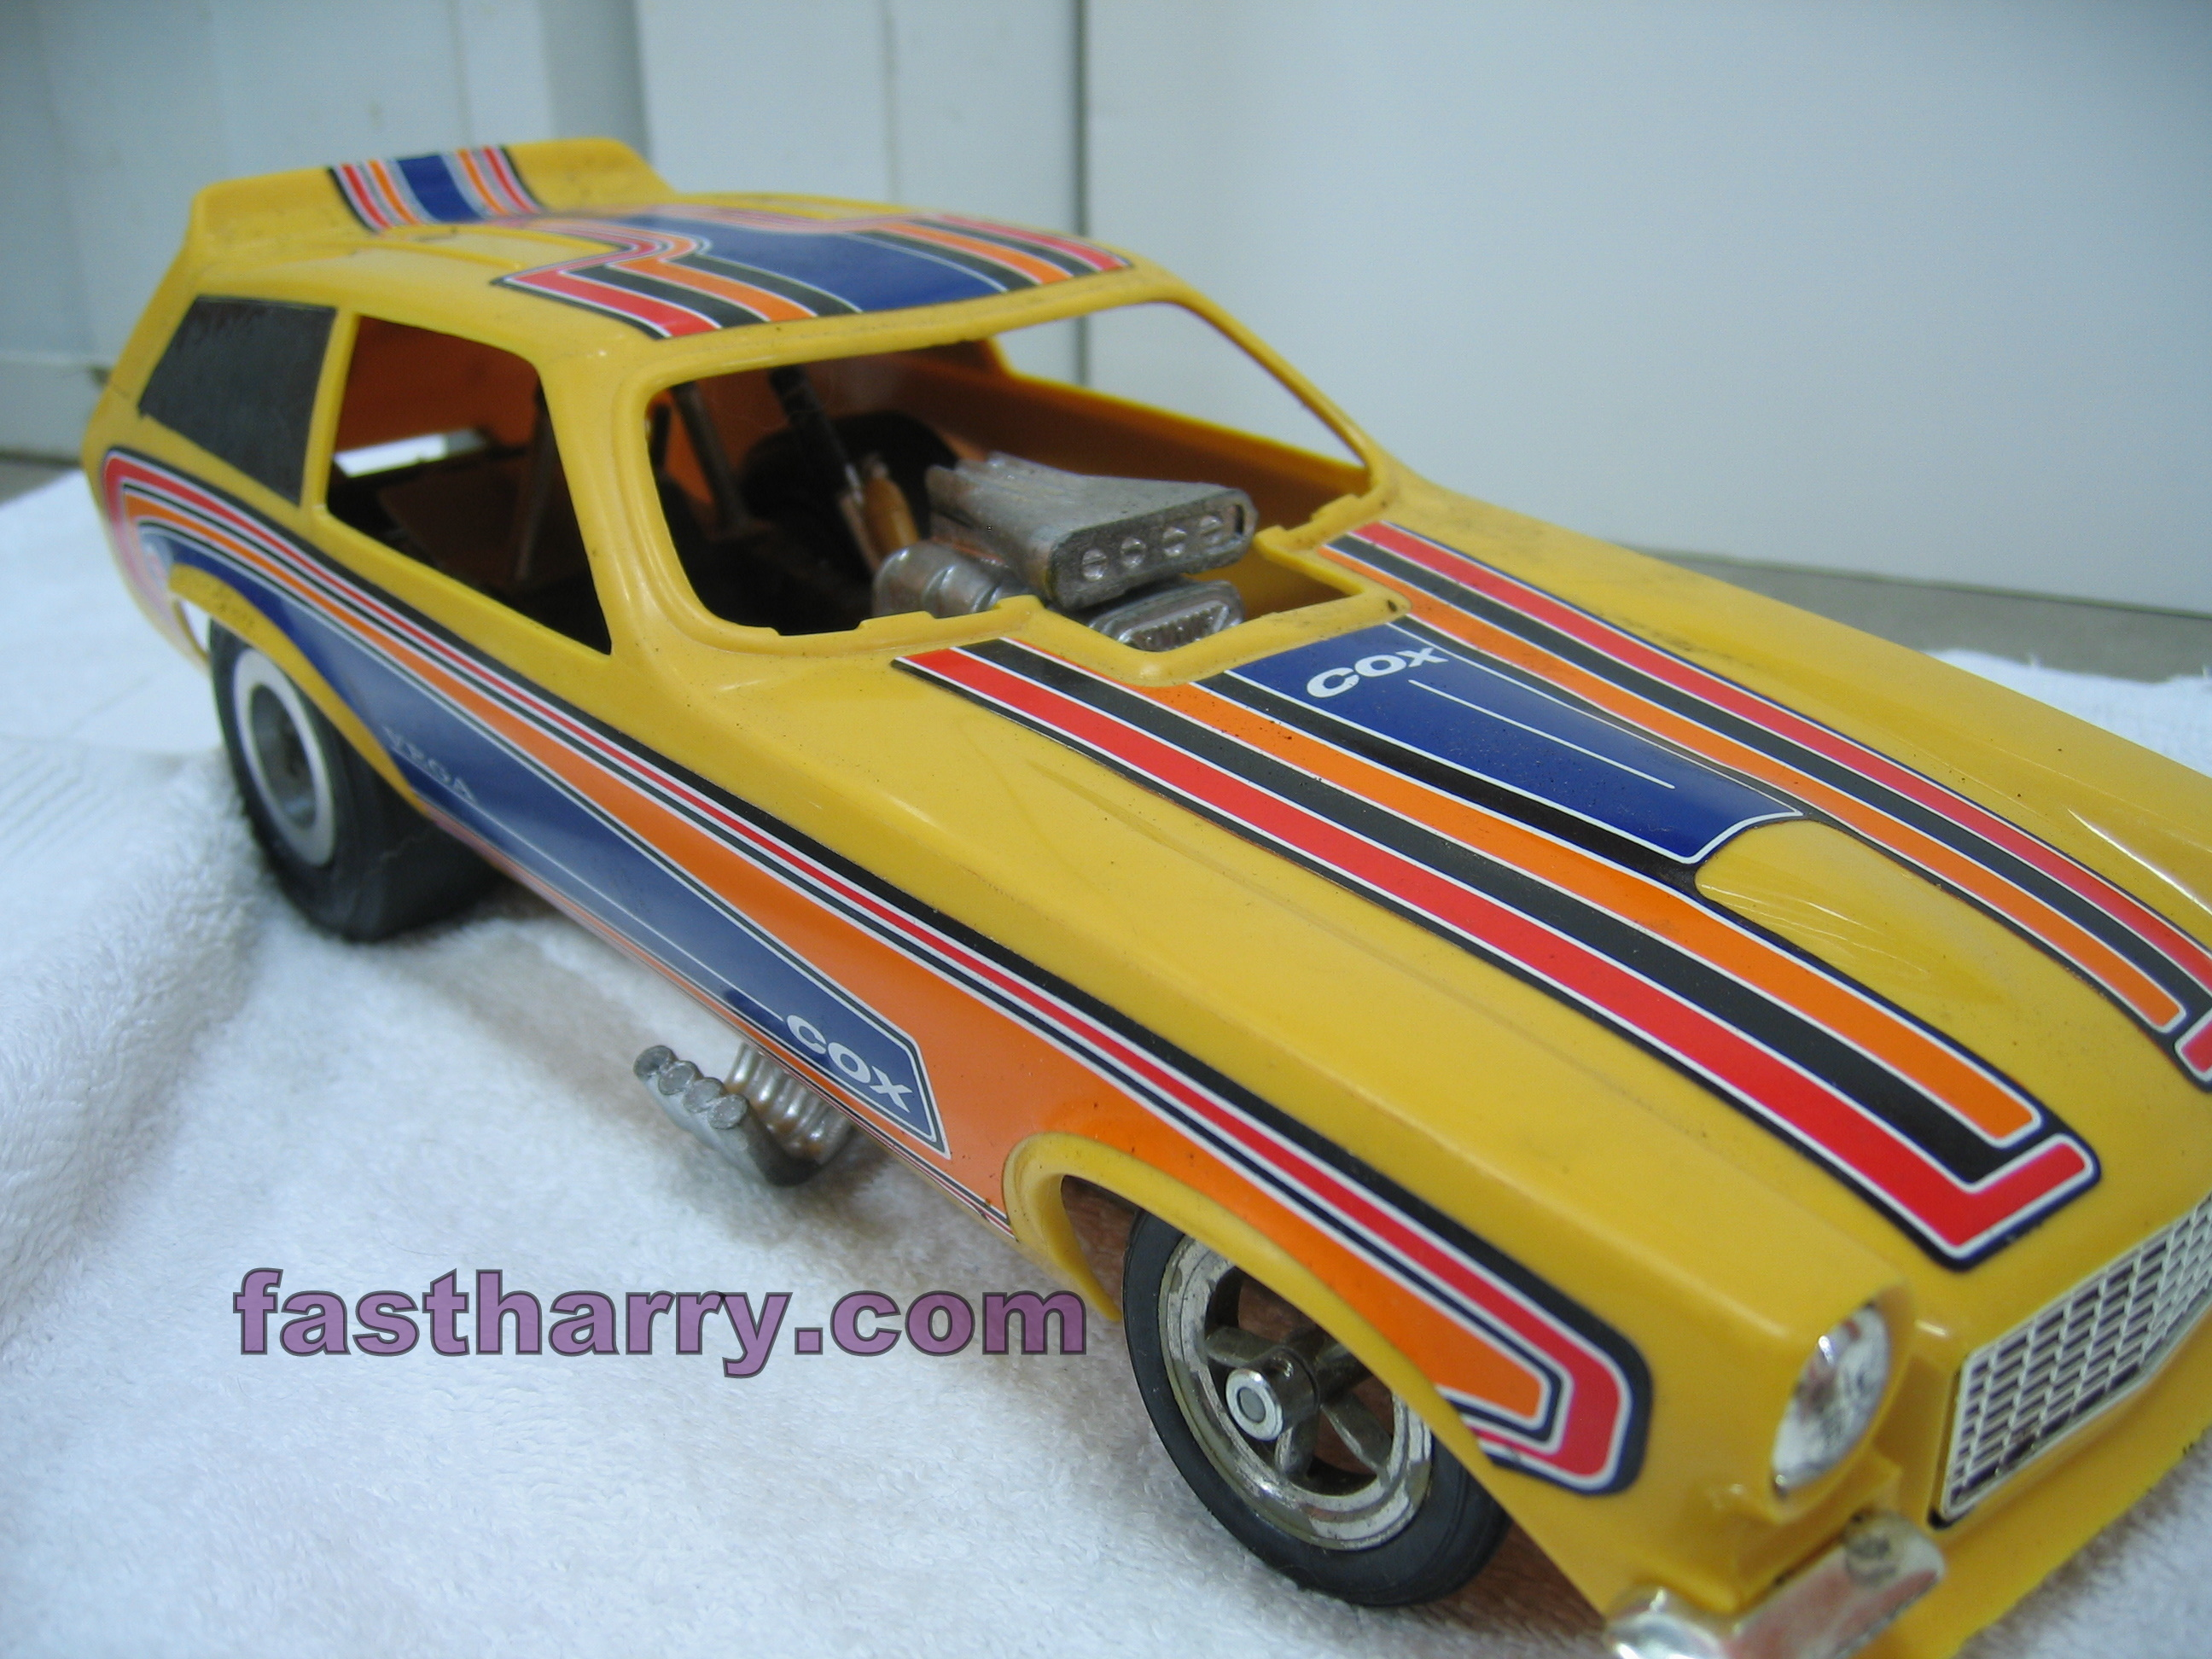 fast nitro rc cars for sale with Vintage Cox 049 Powered Vega Funny Car Kammback Wagon on 2015 Gla Class further 2005 Clk designo by giorgio armani together with Vintage Cox 049 Powered Vega Funny Car Kammback Wagon additionally Rc Cars together with Cheaprc4kids blogspot.